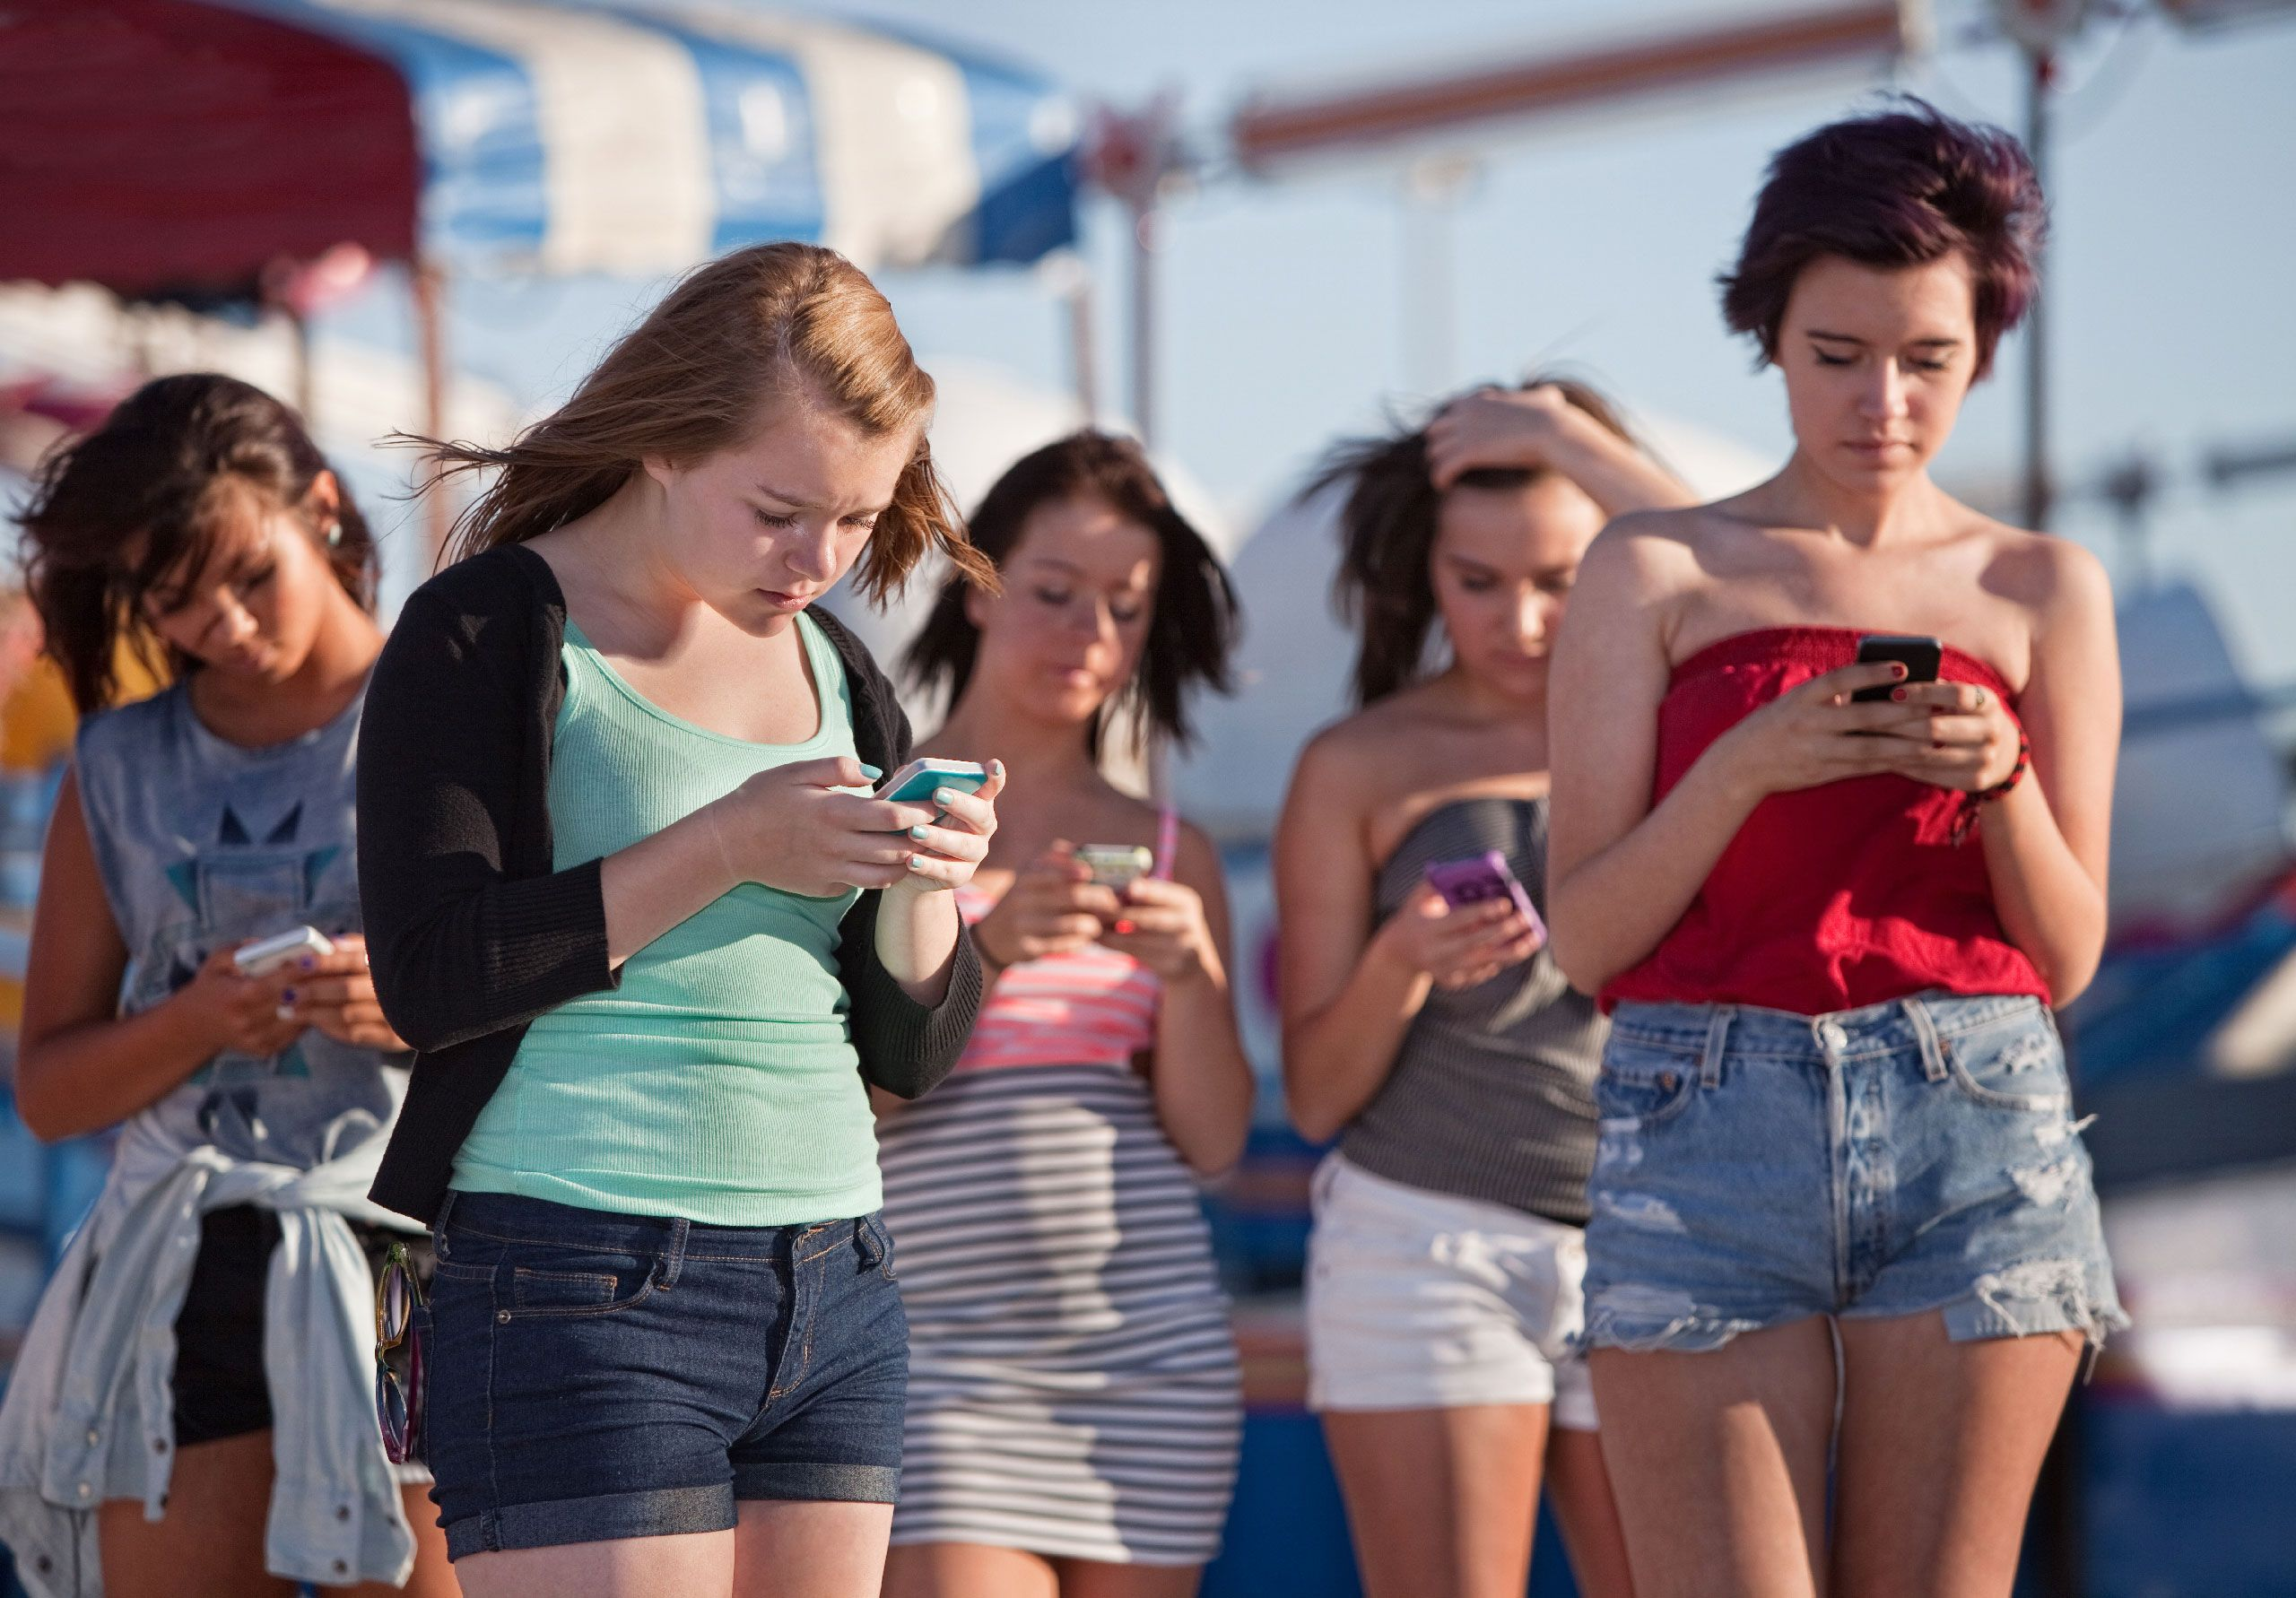 Phone-addicted teens aren't as happy as those who play sports and hang out  IRL, new study suggests | TechCrunch